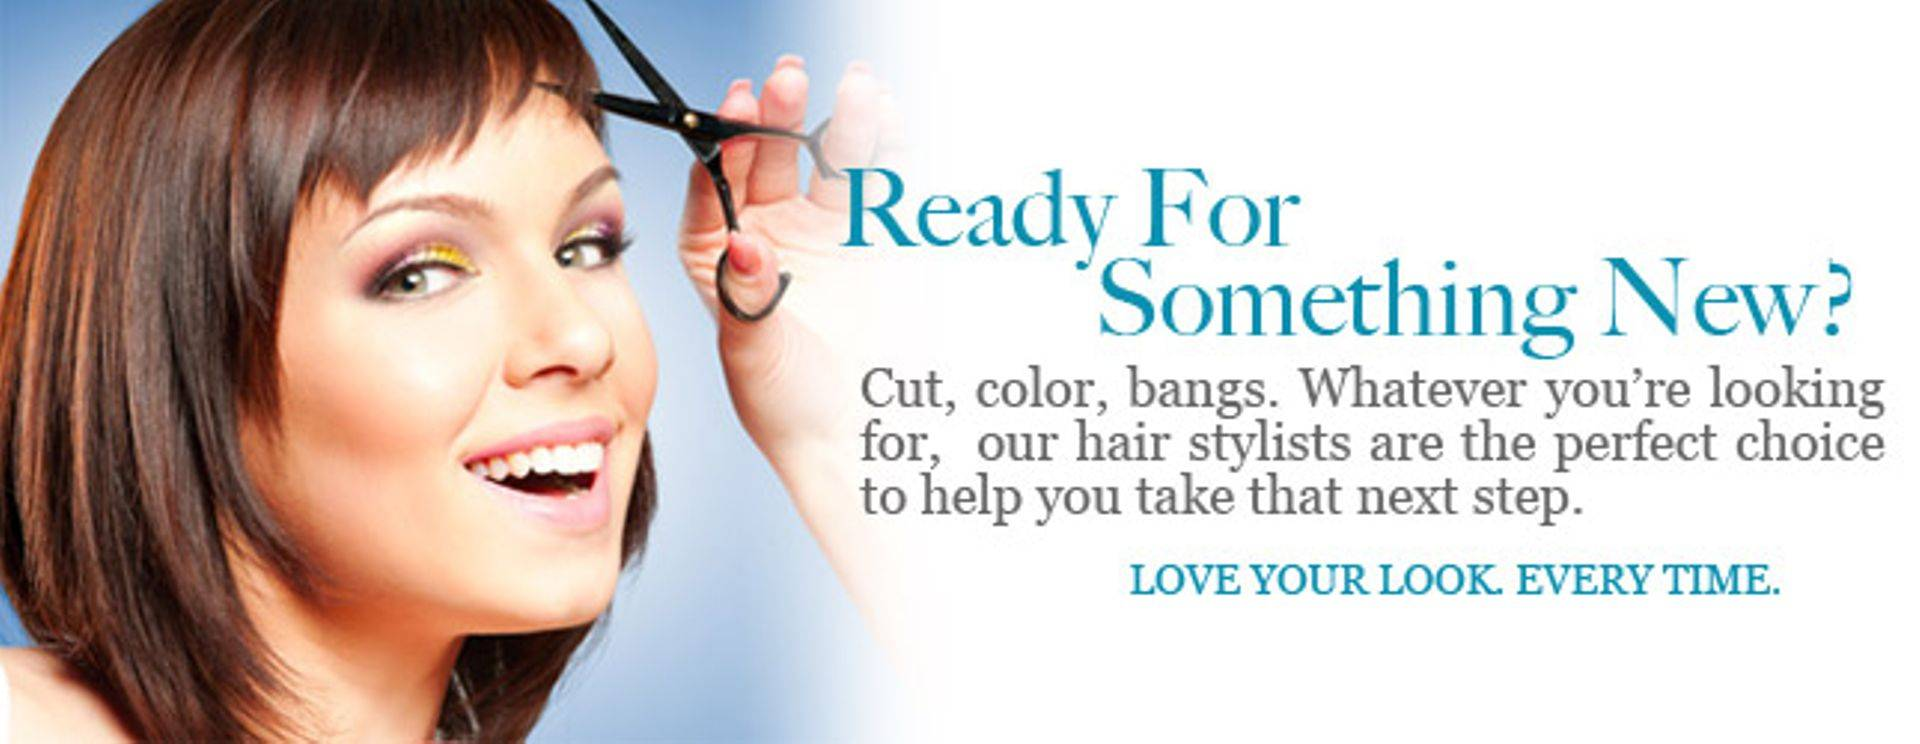 Hair Salon Colorado springs